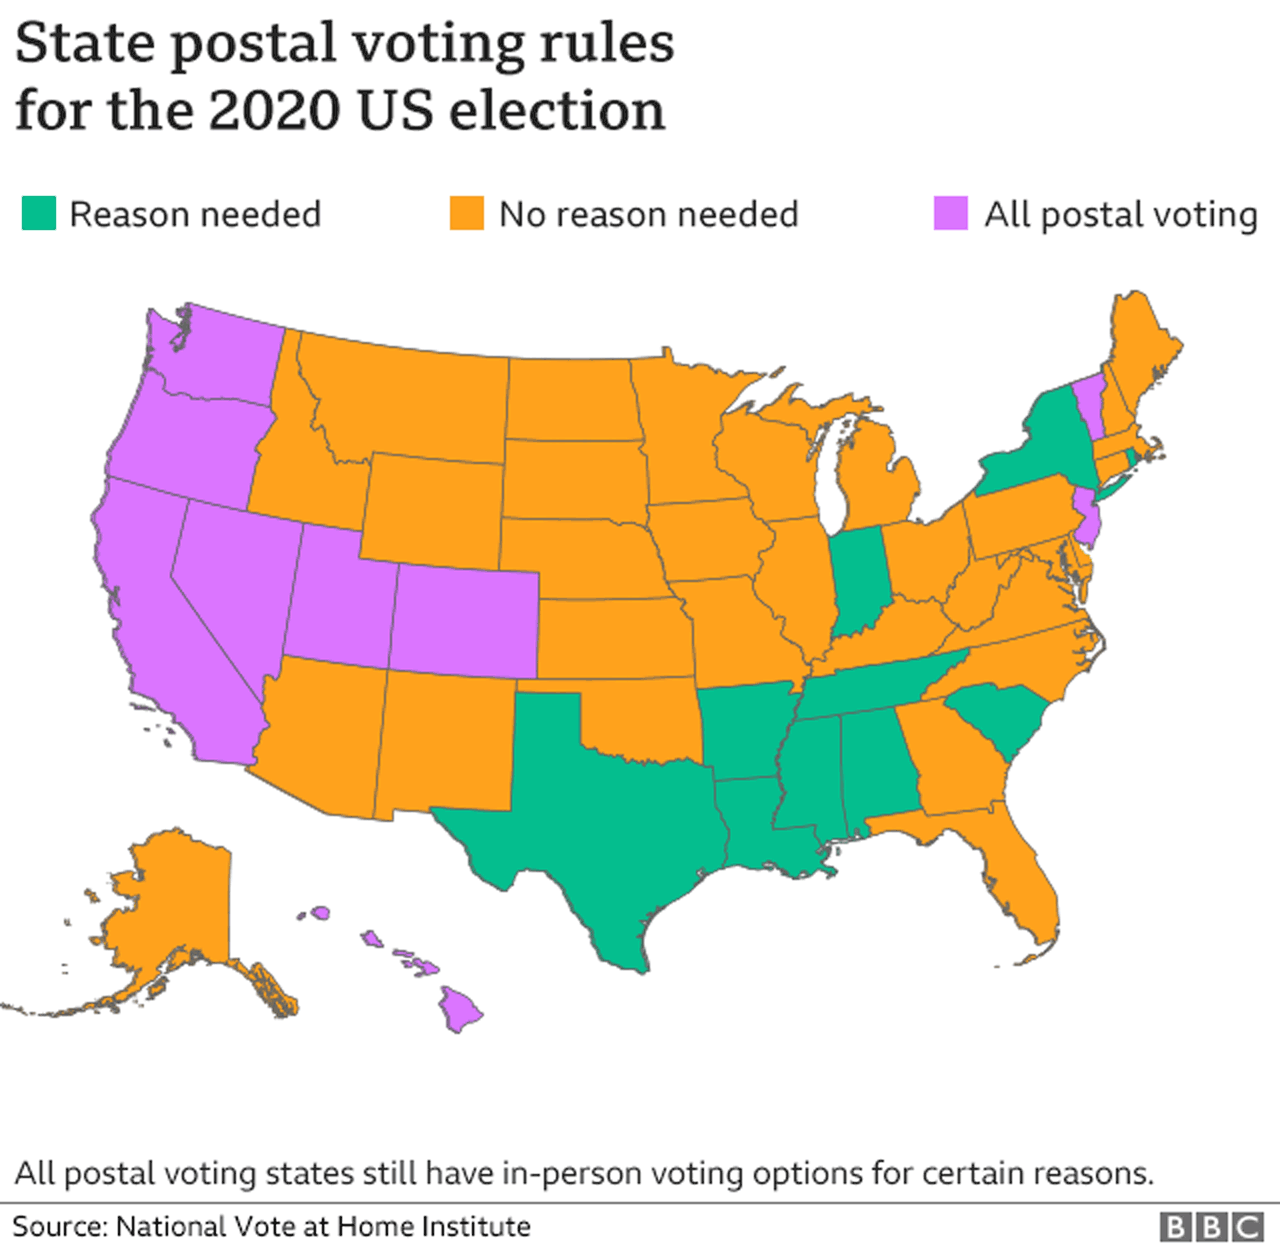 Postal voting by state